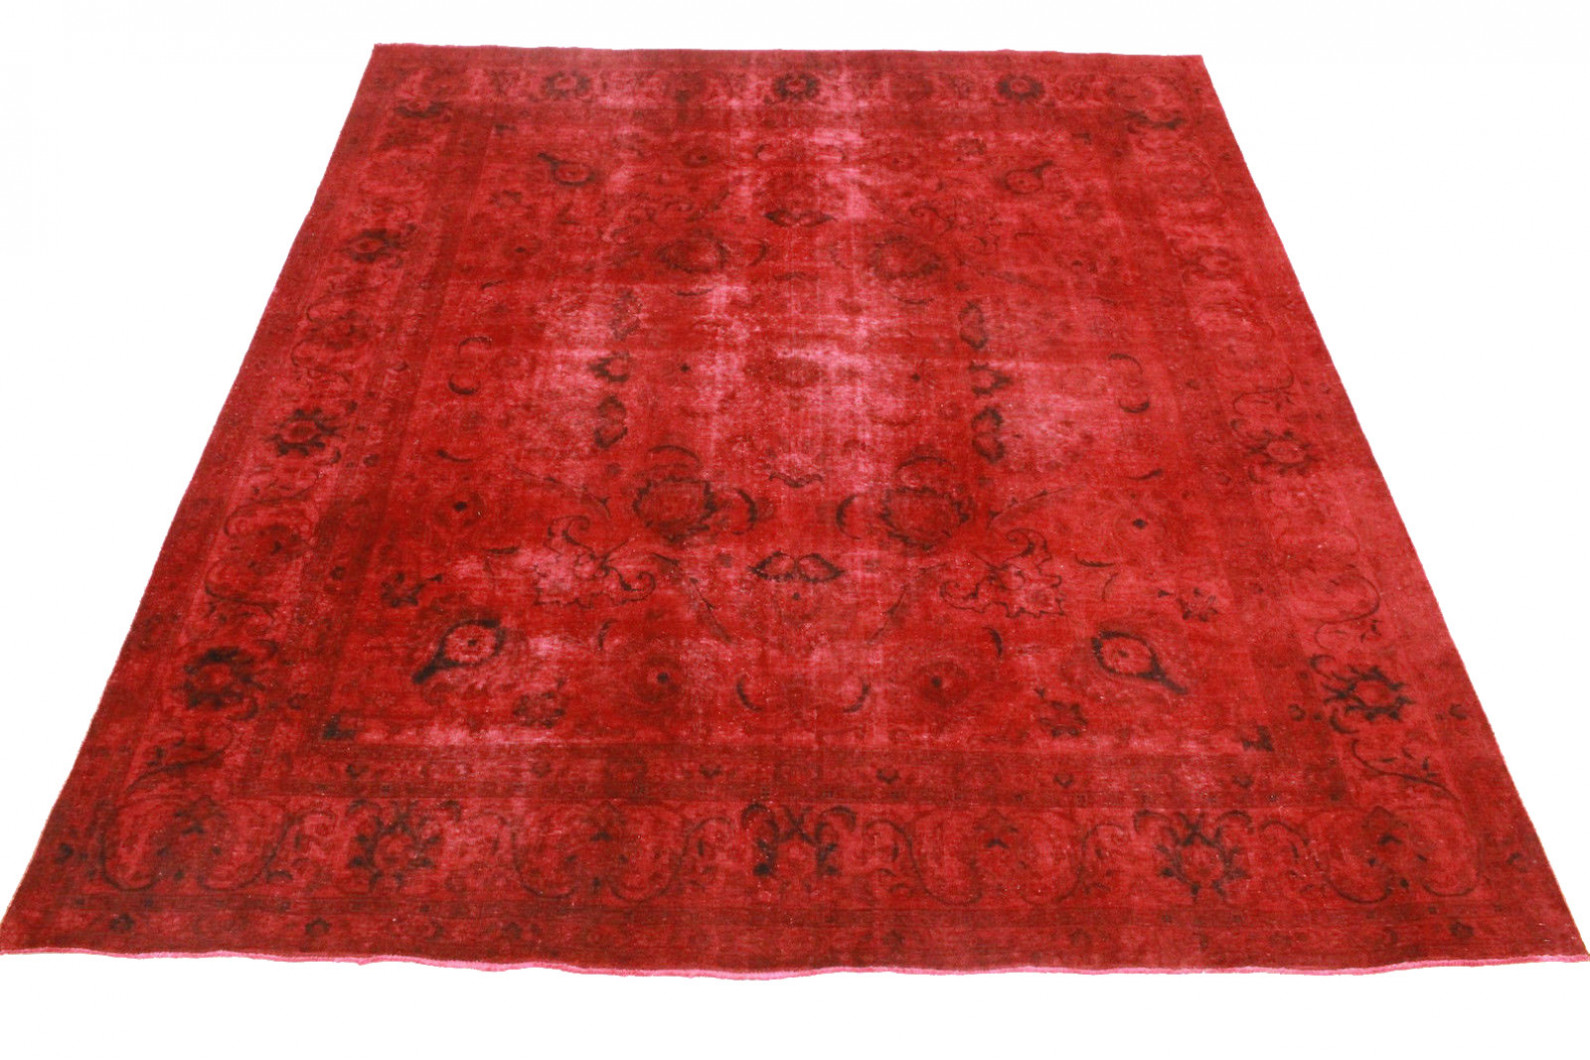 vintage teppich rot in 340x290cm 1001 3365 bei carpetido. Black Bedroom Furniture Sets. Home Design Ideas